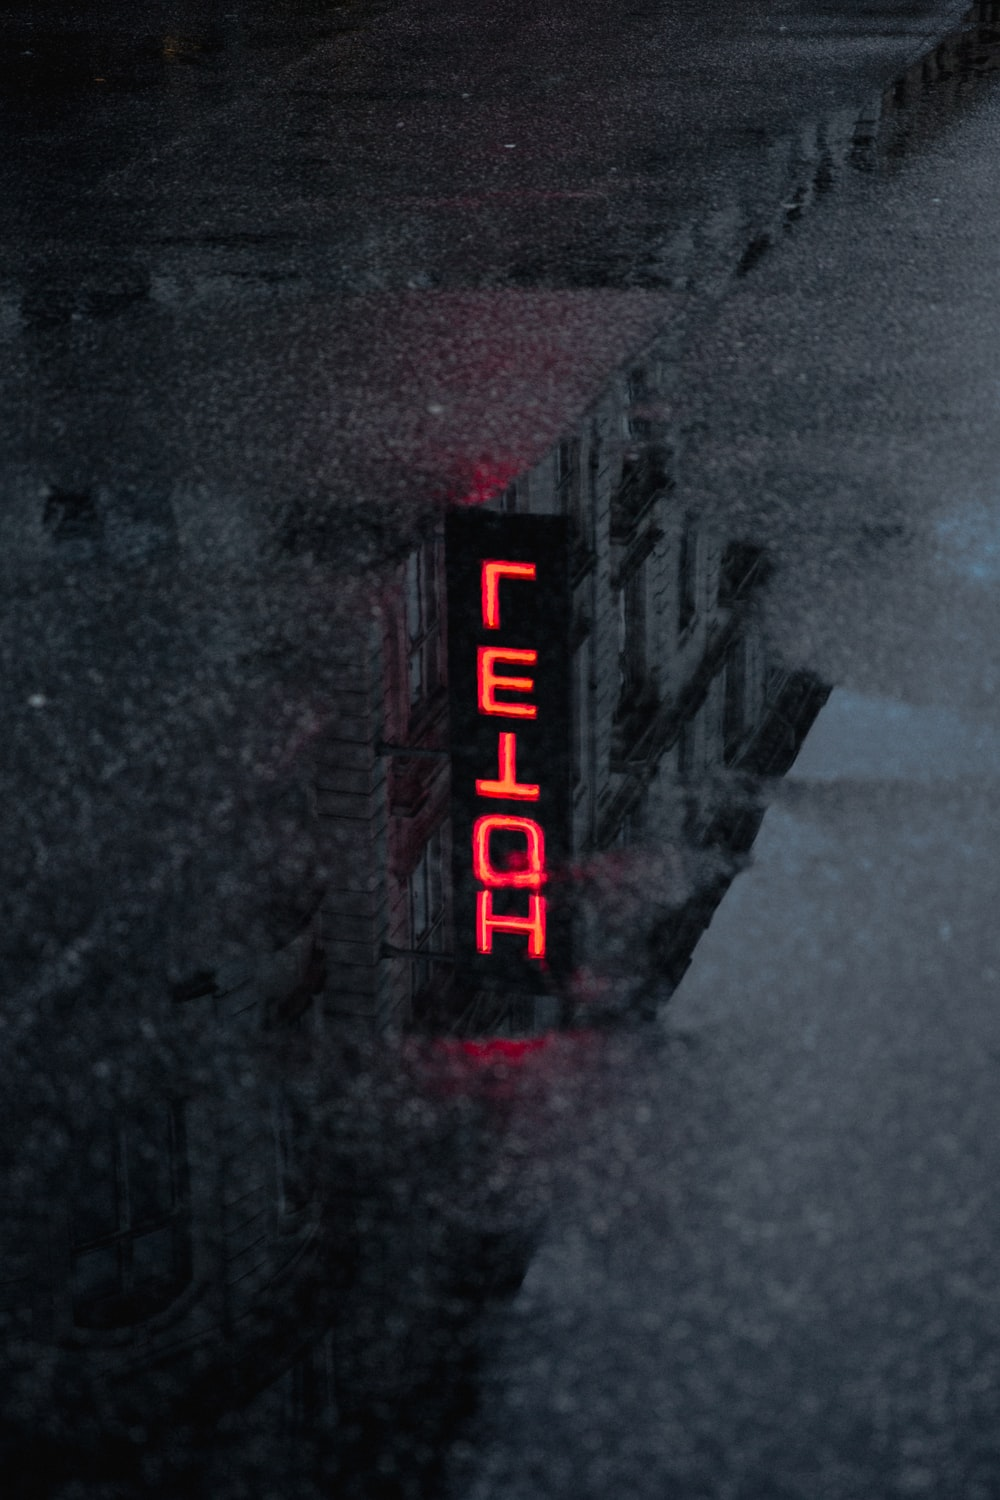 red Hotel neon light signage reflection on puddle during daytime